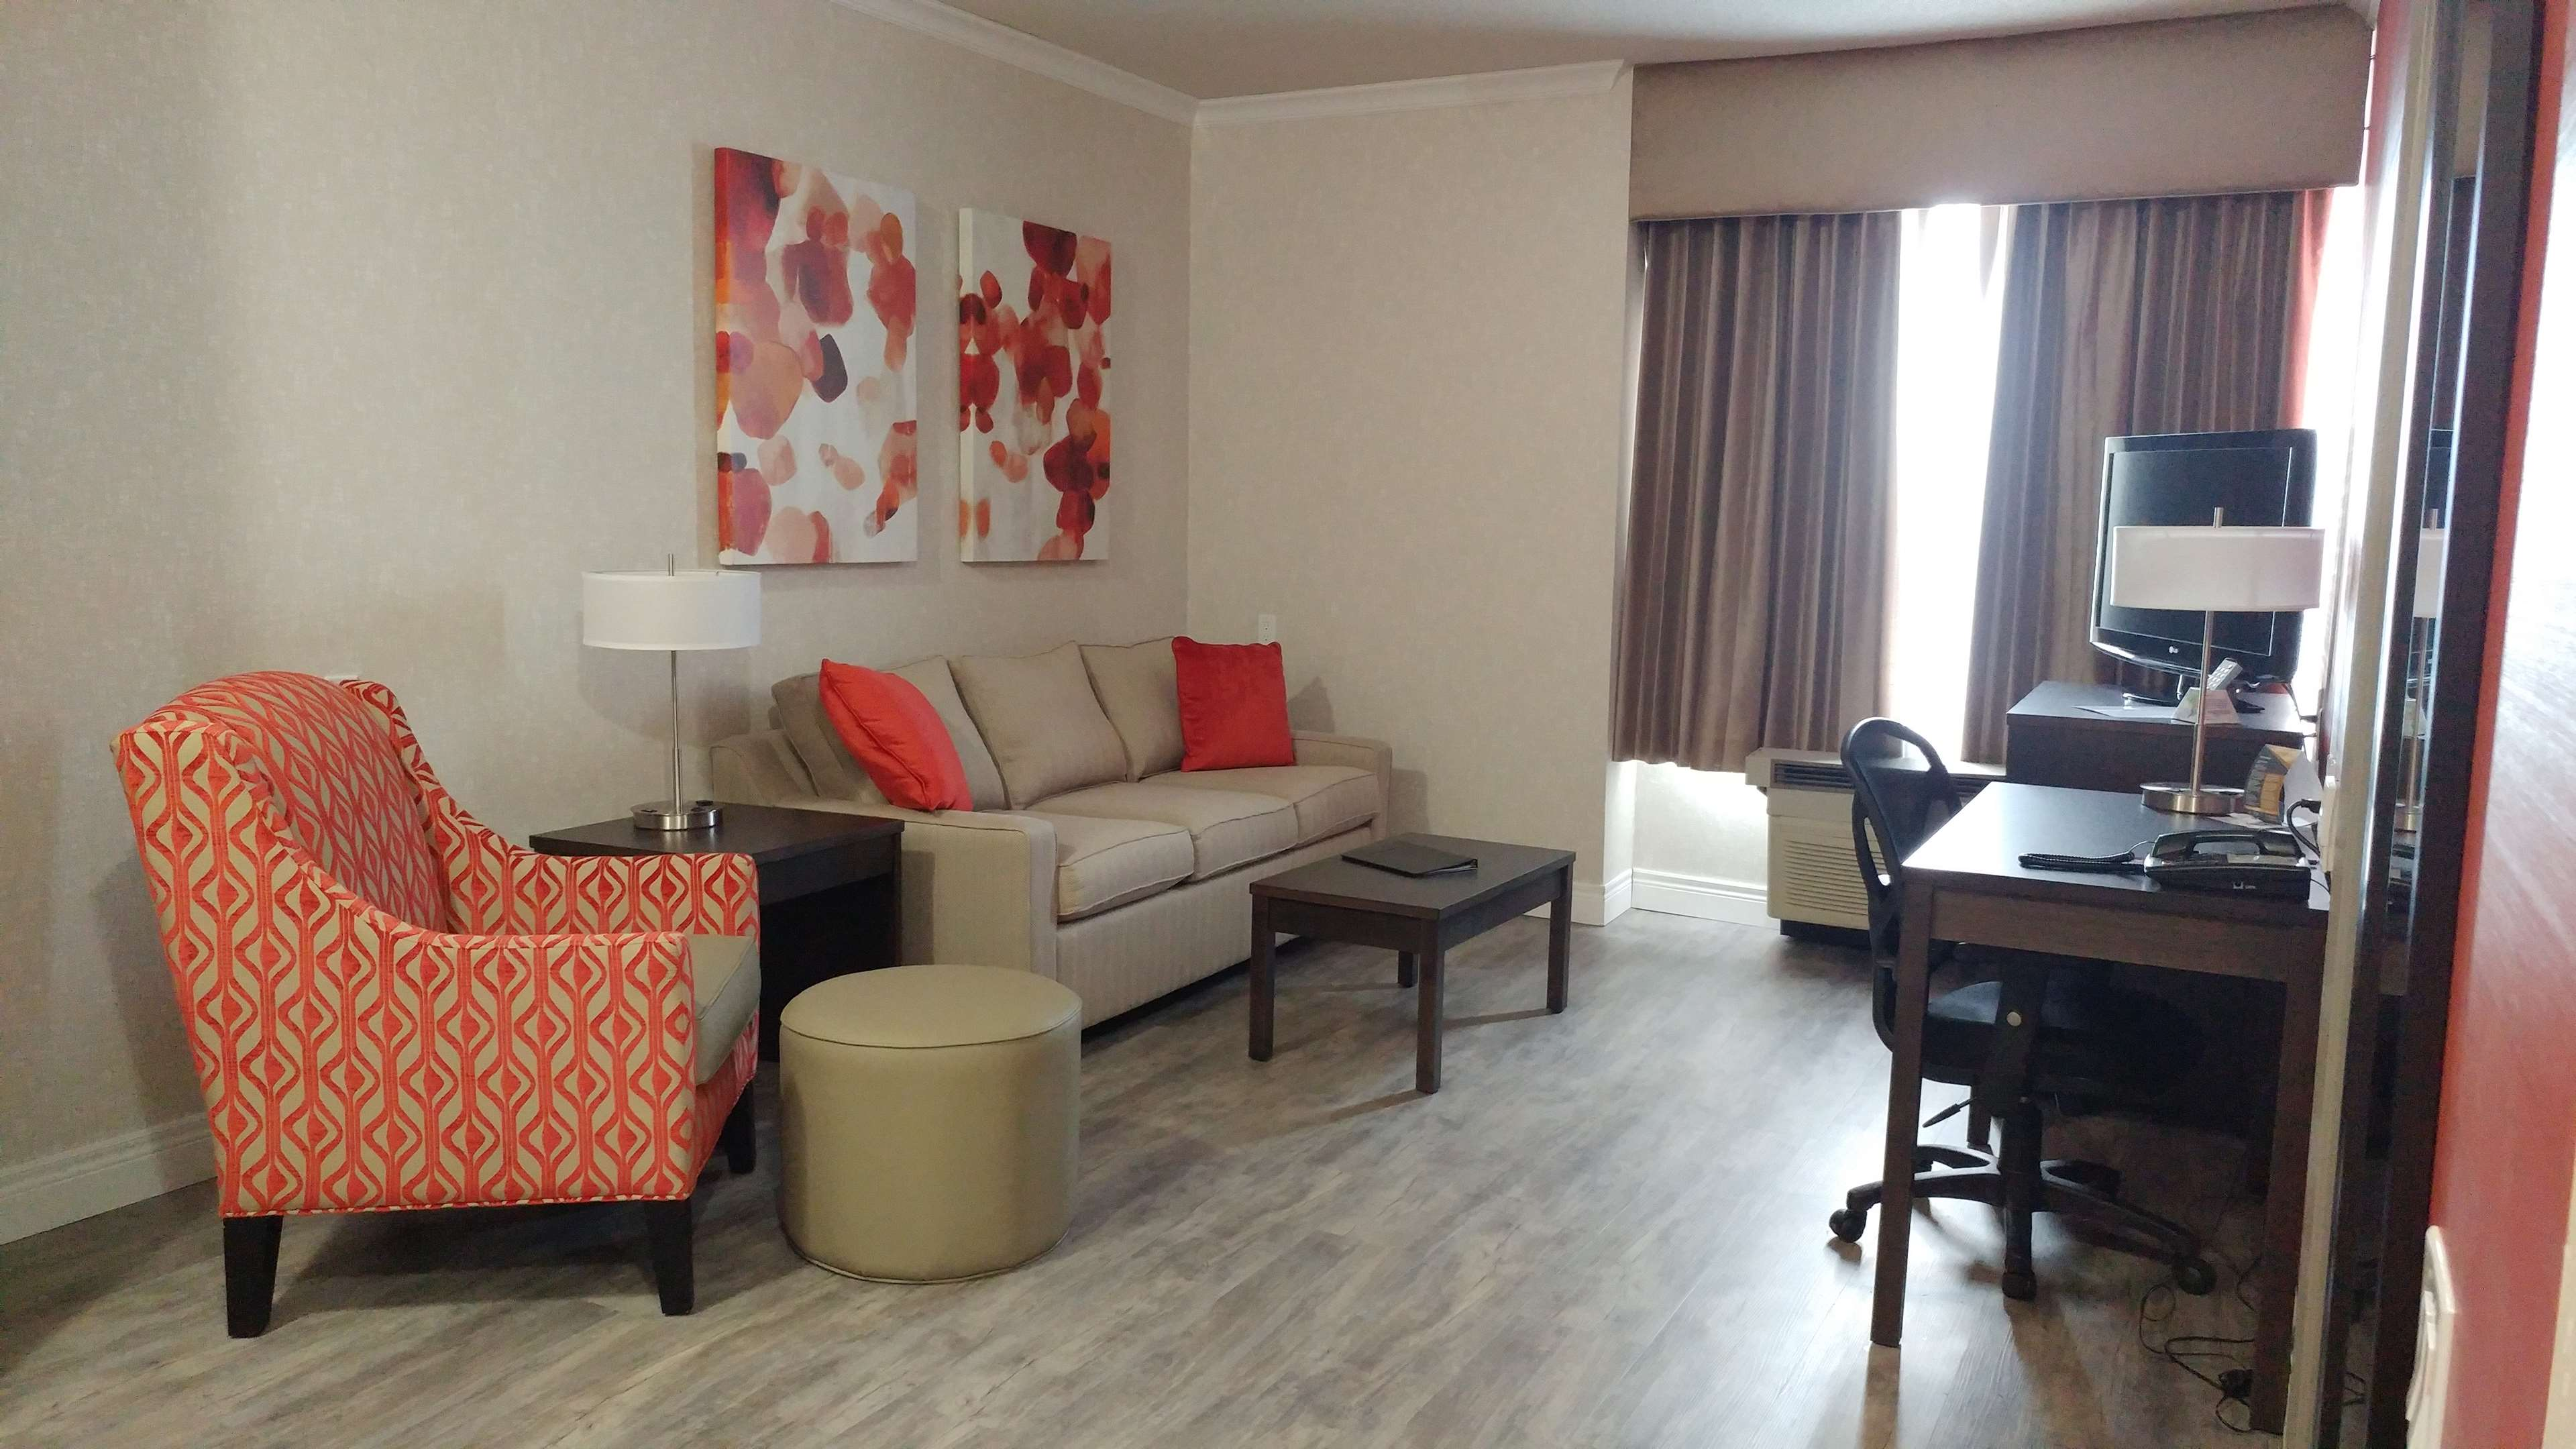 Best Western Plus Rose City Suites in Welland: Living room of the accessible suite